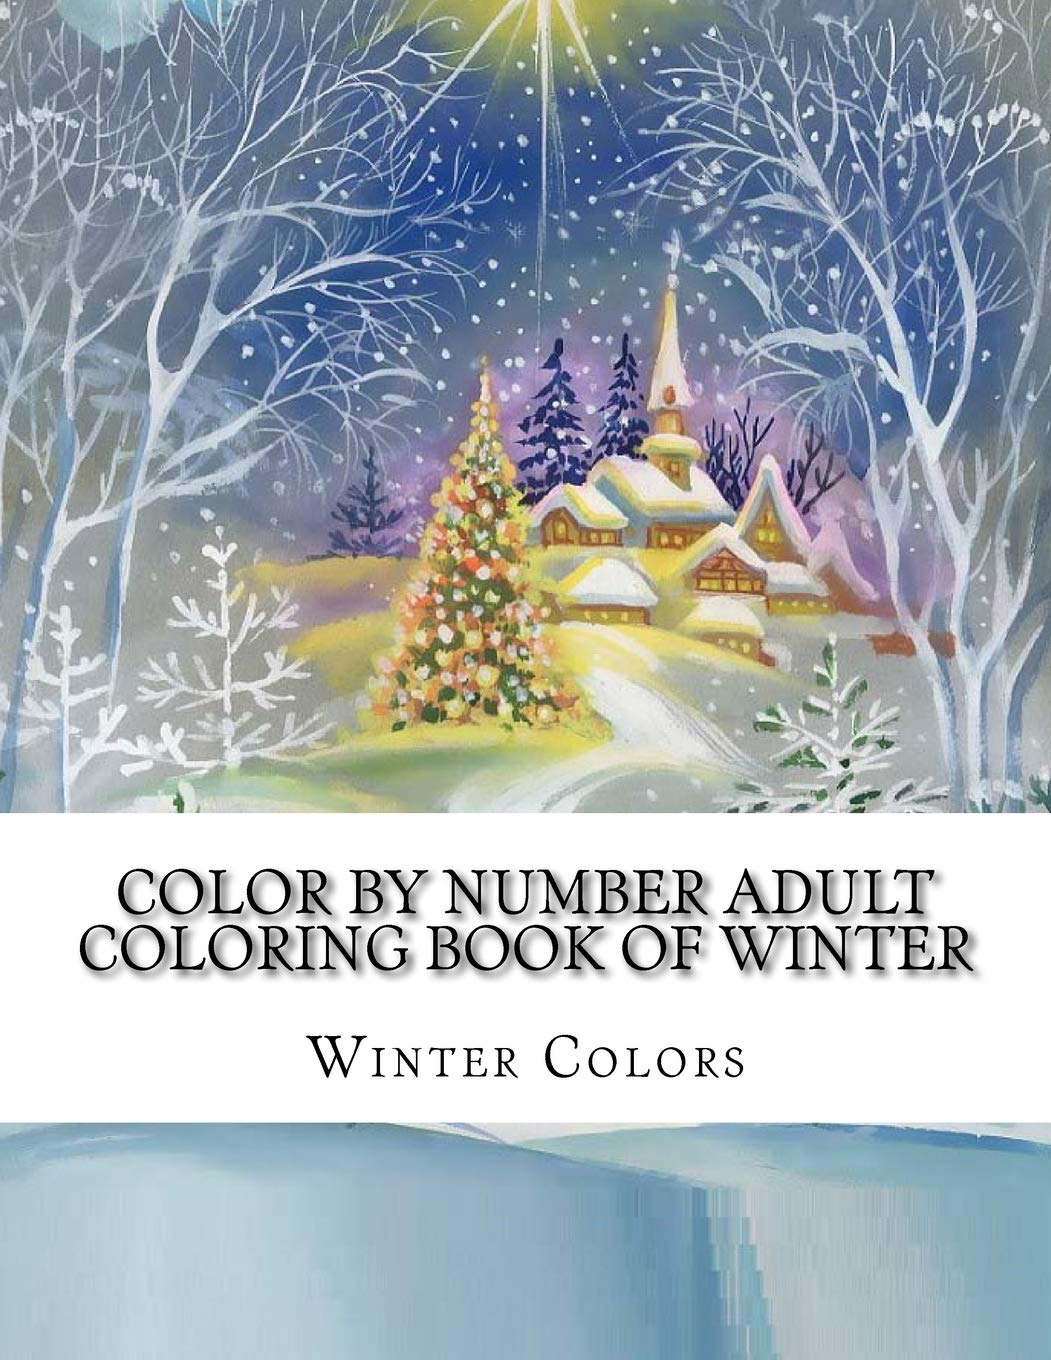 Color By Number Adult Coloring Book Of Winter  Festive Winter Fun Holiday Christmas Winter Season Coloring Book  Winter Color By Number Coloring Book For Adults